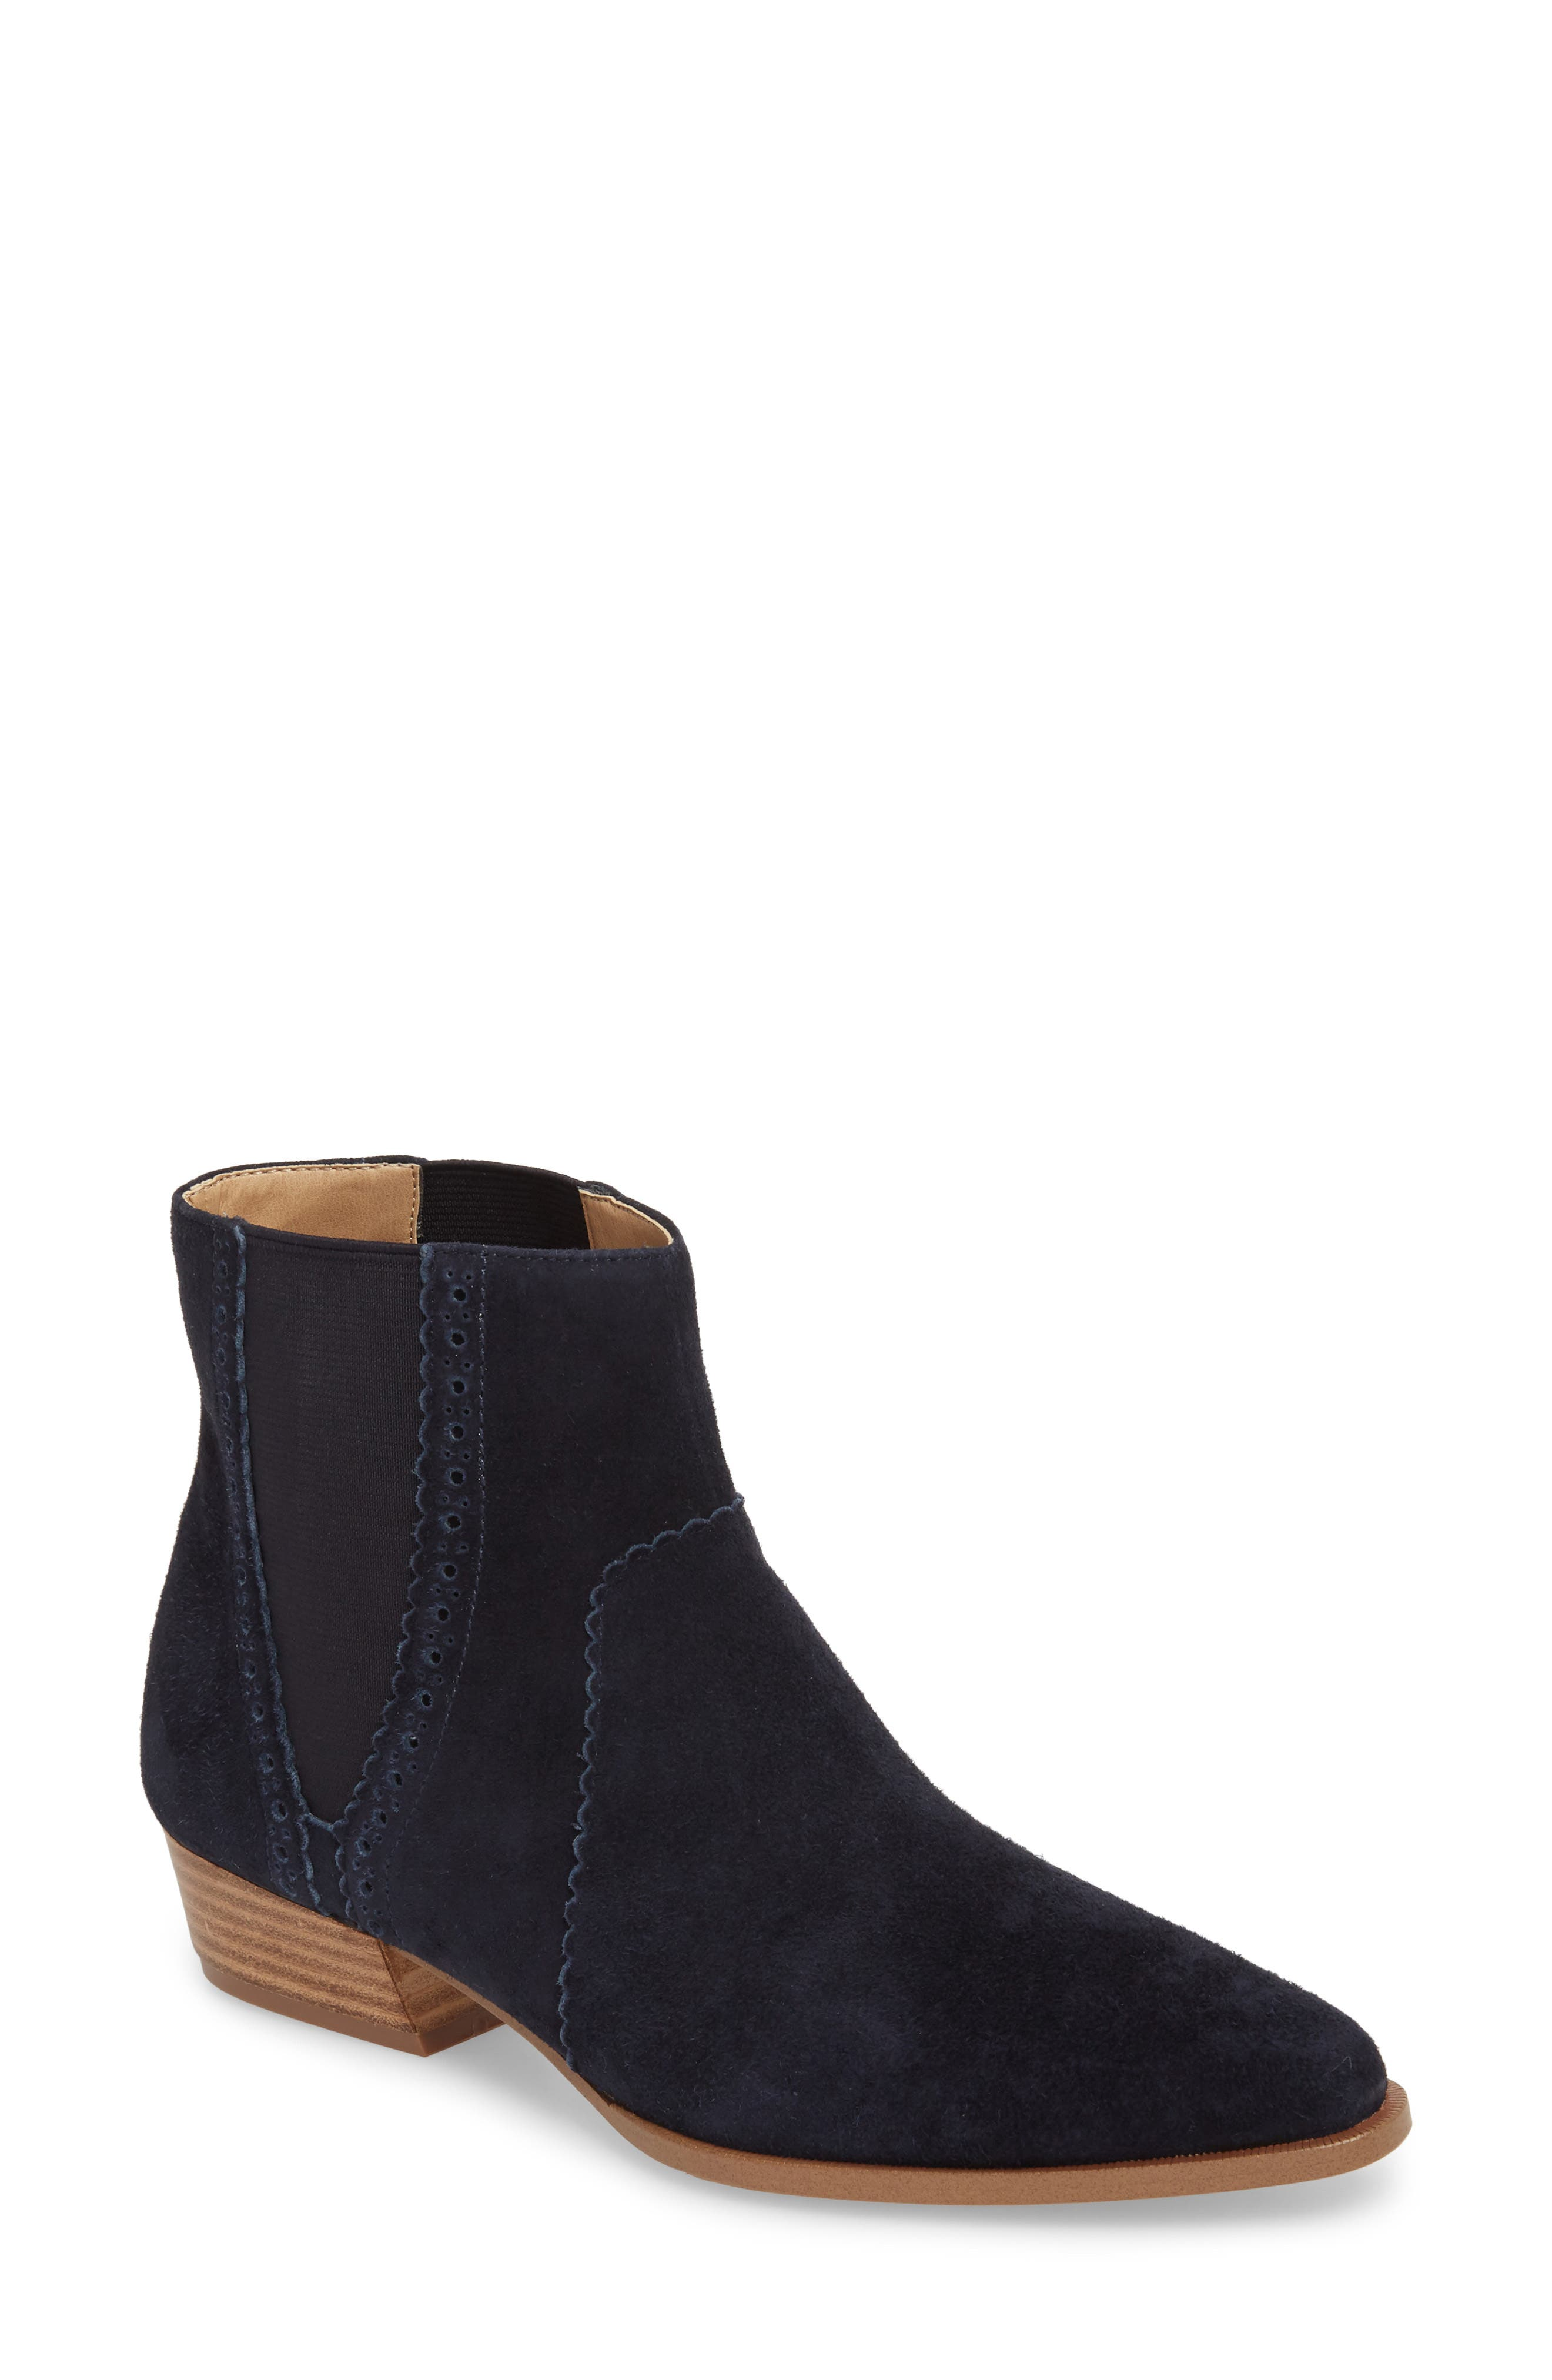 Mica Chelsea Bootie,                             Main thumbnail 1, color,                             SPACE CADET SUEDE